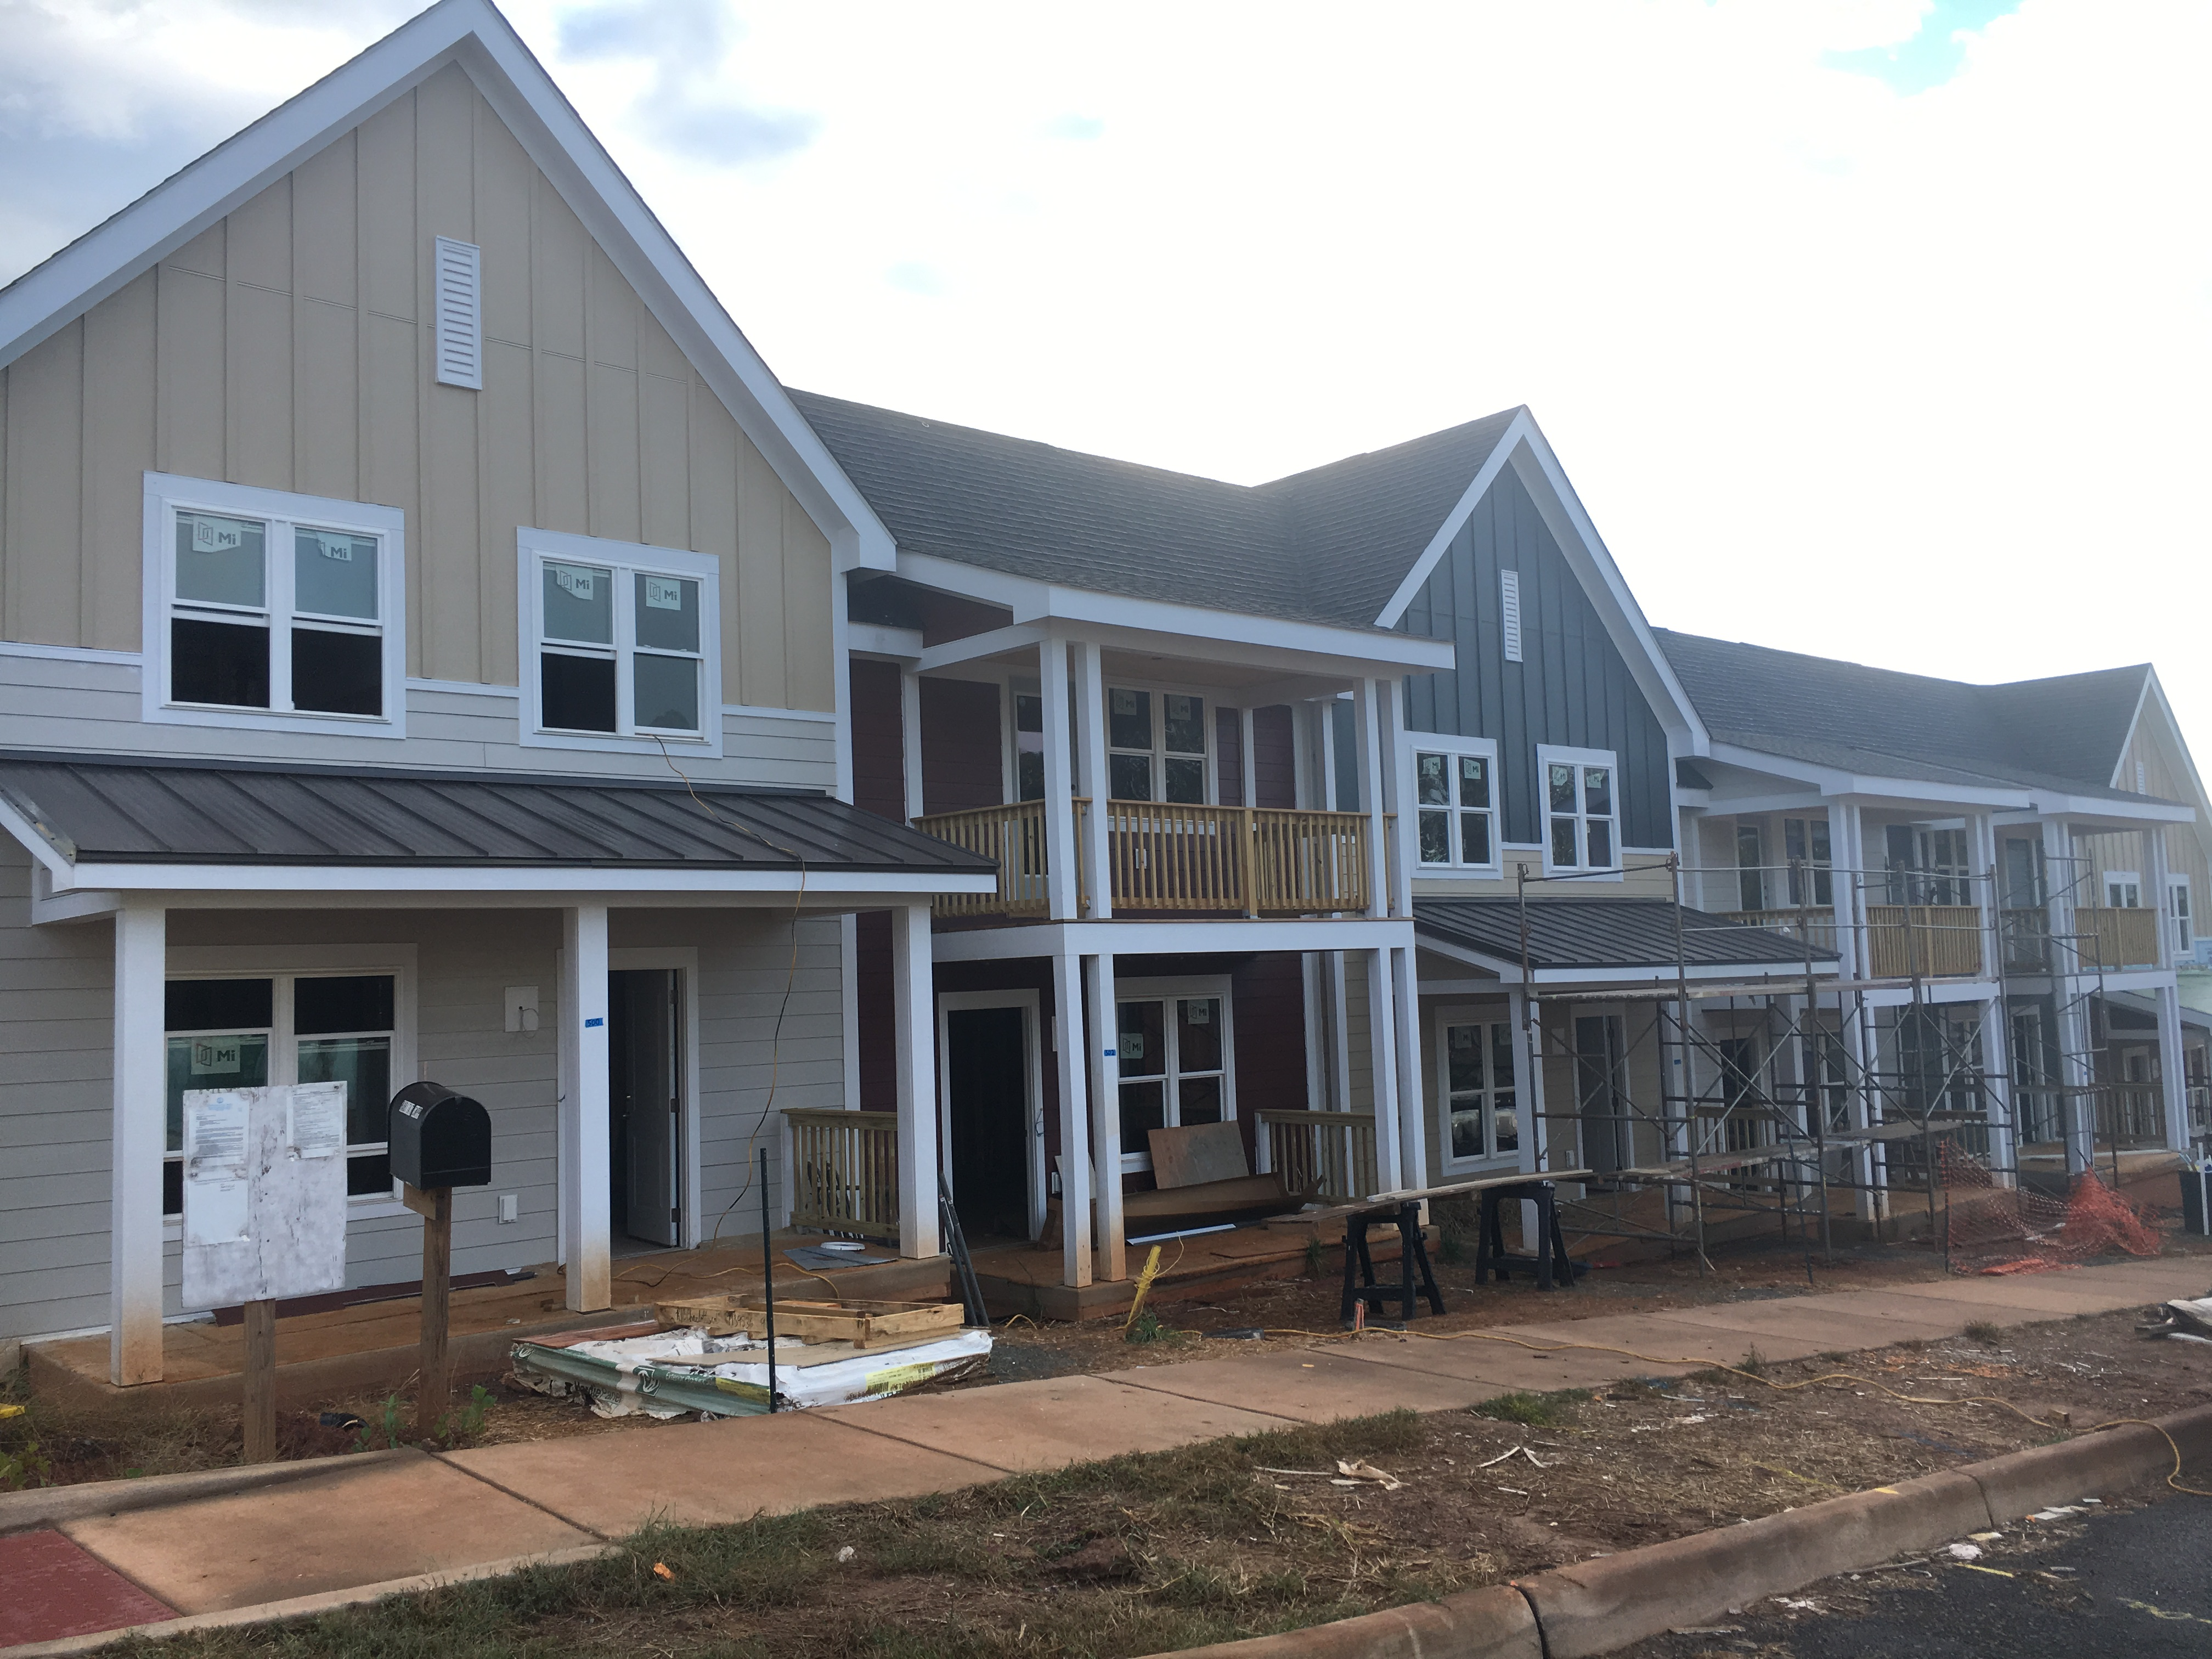 Lochlyn Front Siding and Porches Complete